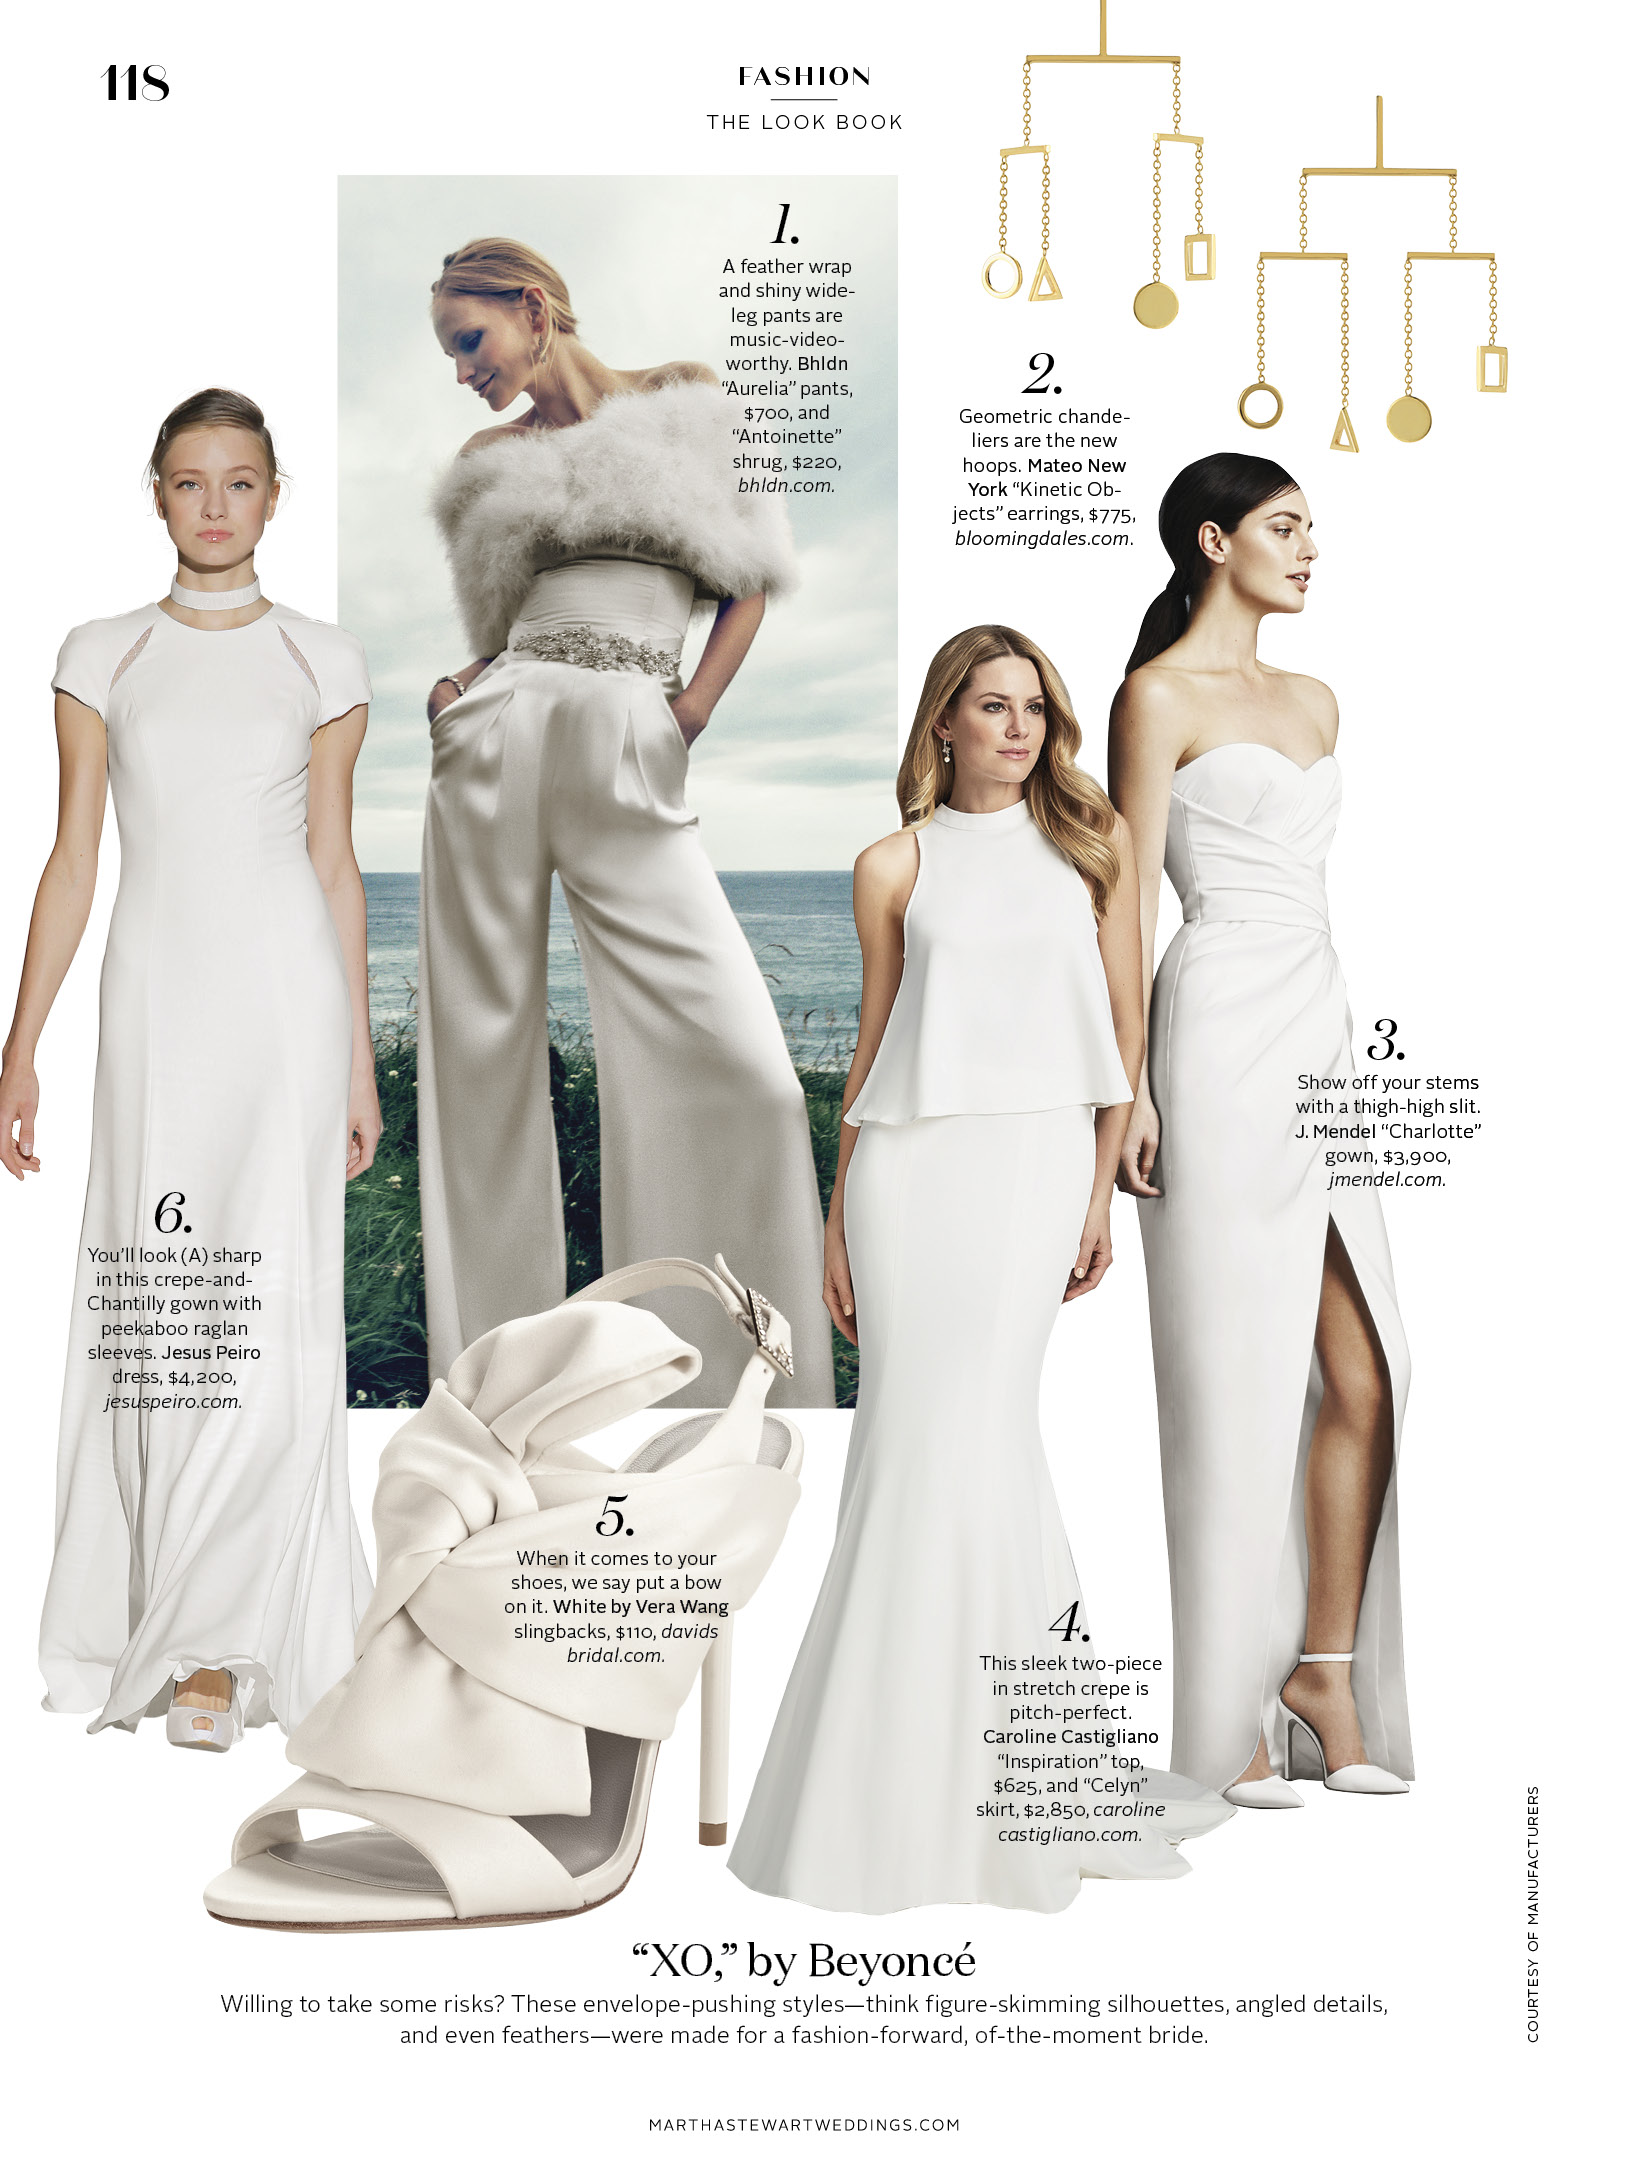 Martha Stewart Weddings designer wedding dresses by caroline Castigliano